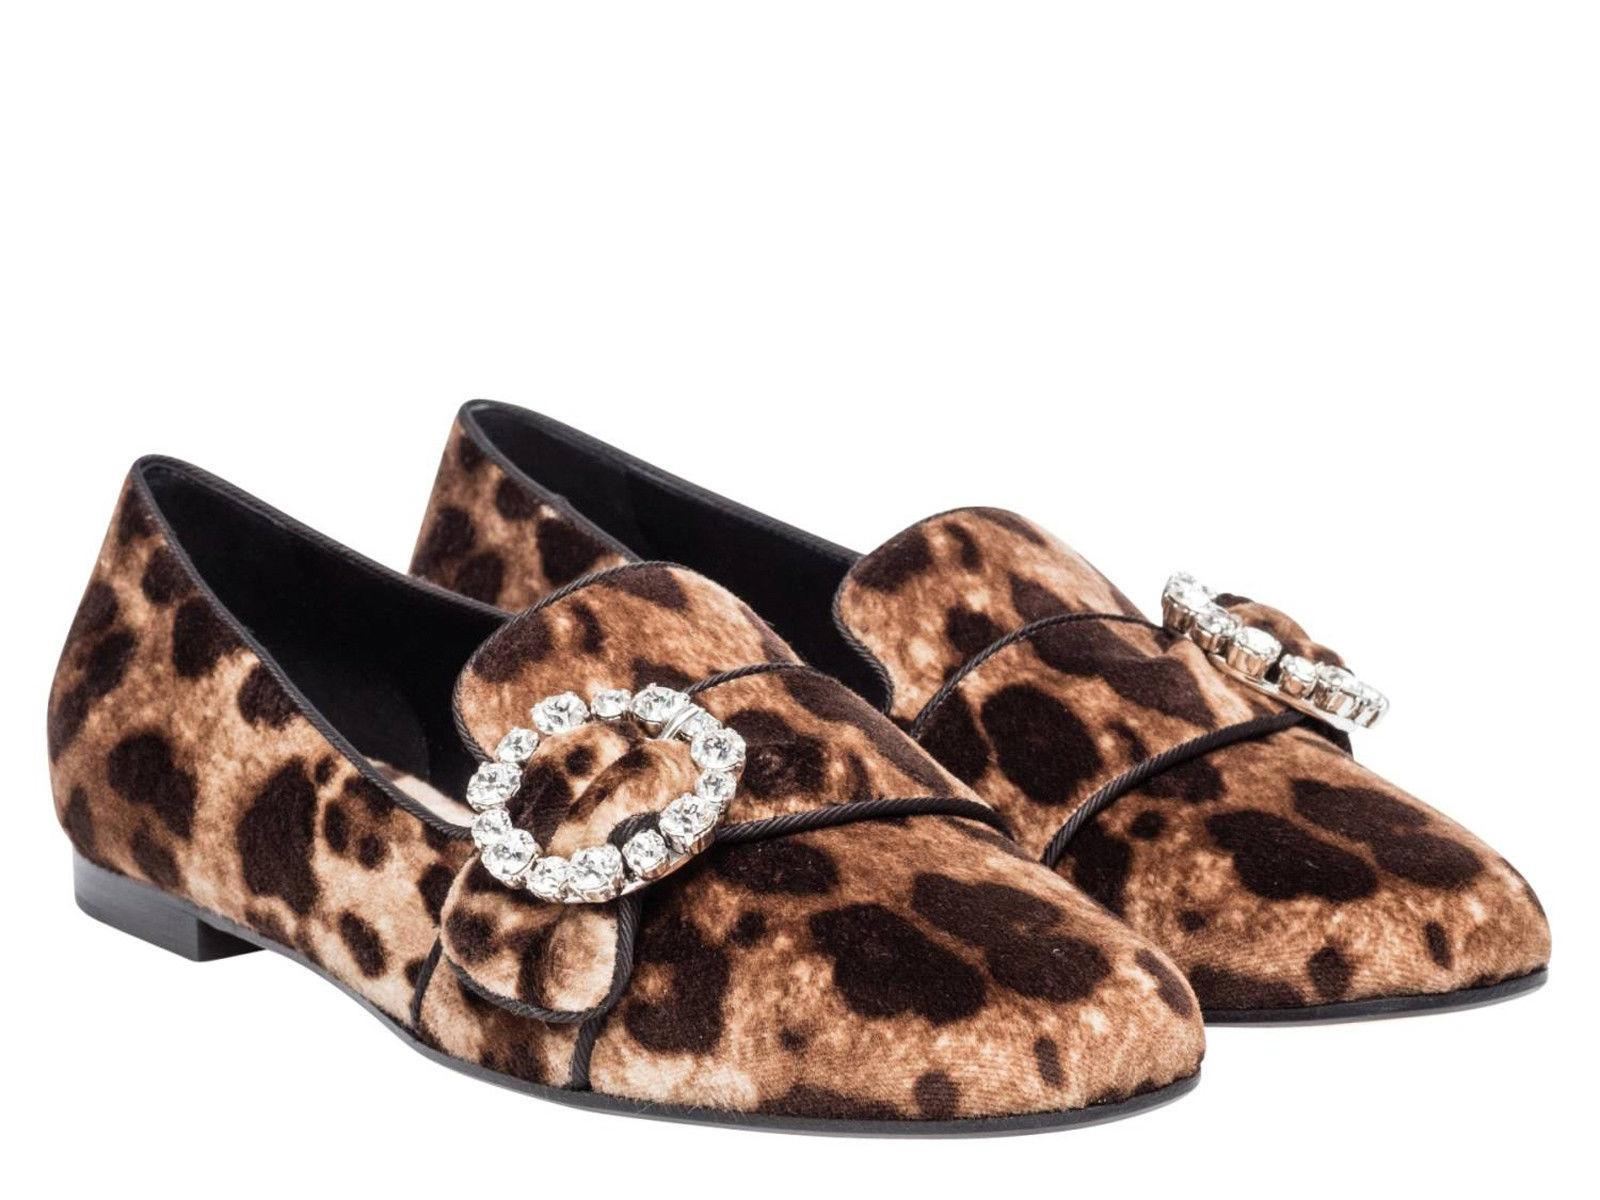 a0ee8bade6ae Dolce Gabbana Loafers In Leopard Print Velvet Flats Flats Flats Size US 6  Regular (M